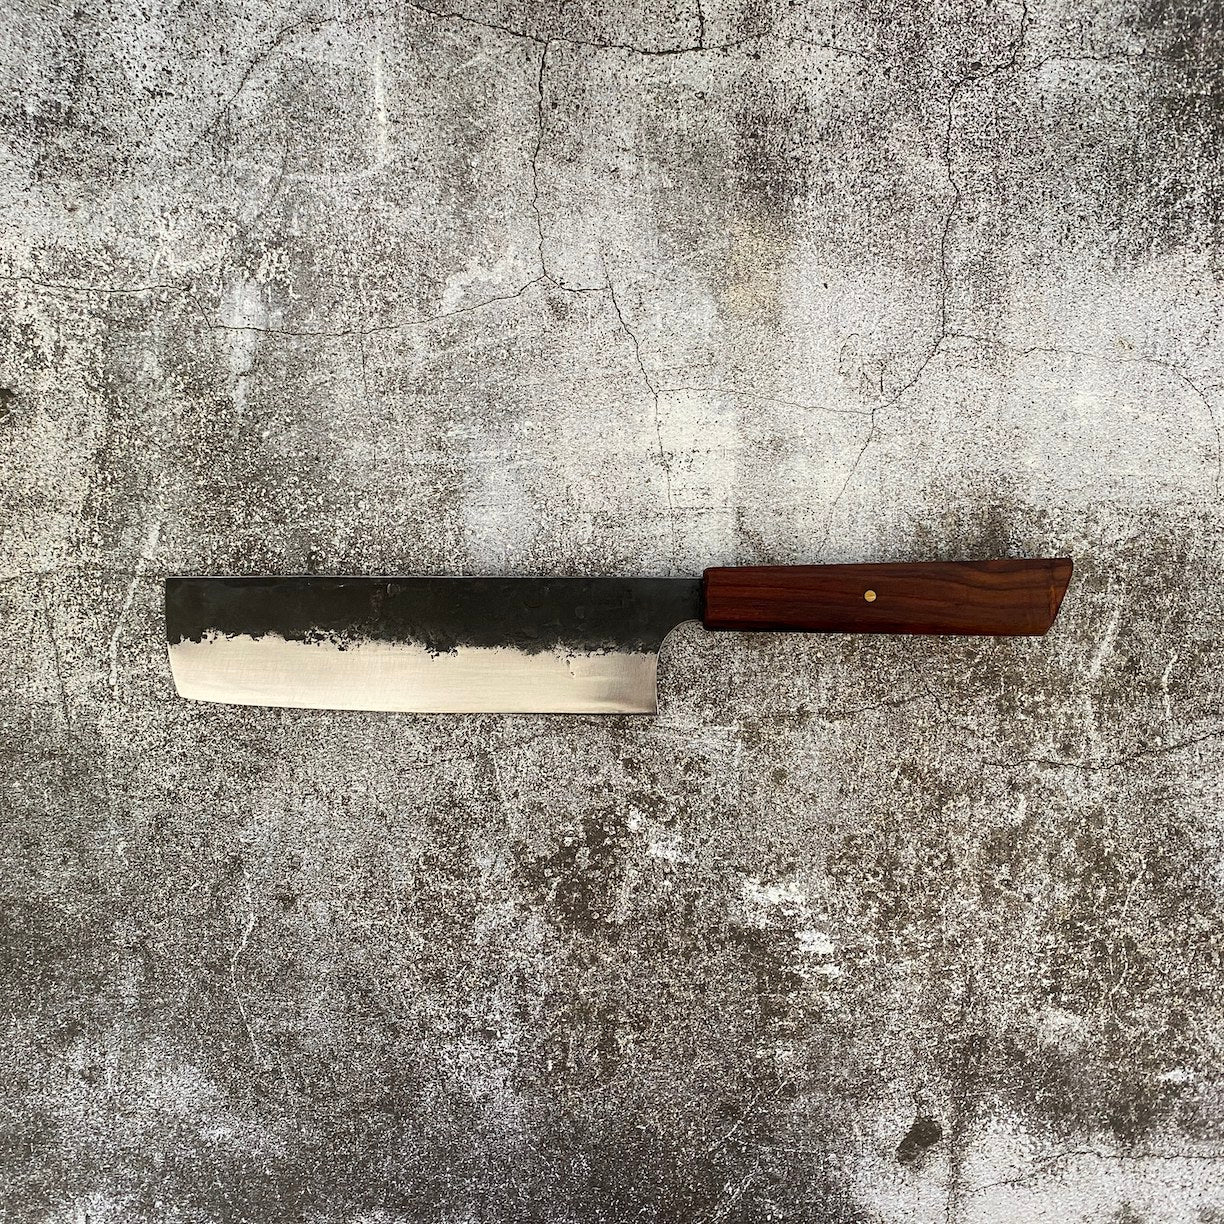 180mm Heavy Nakiri. Kurouchi Leaf Spring. Rosewood. Brass Pin